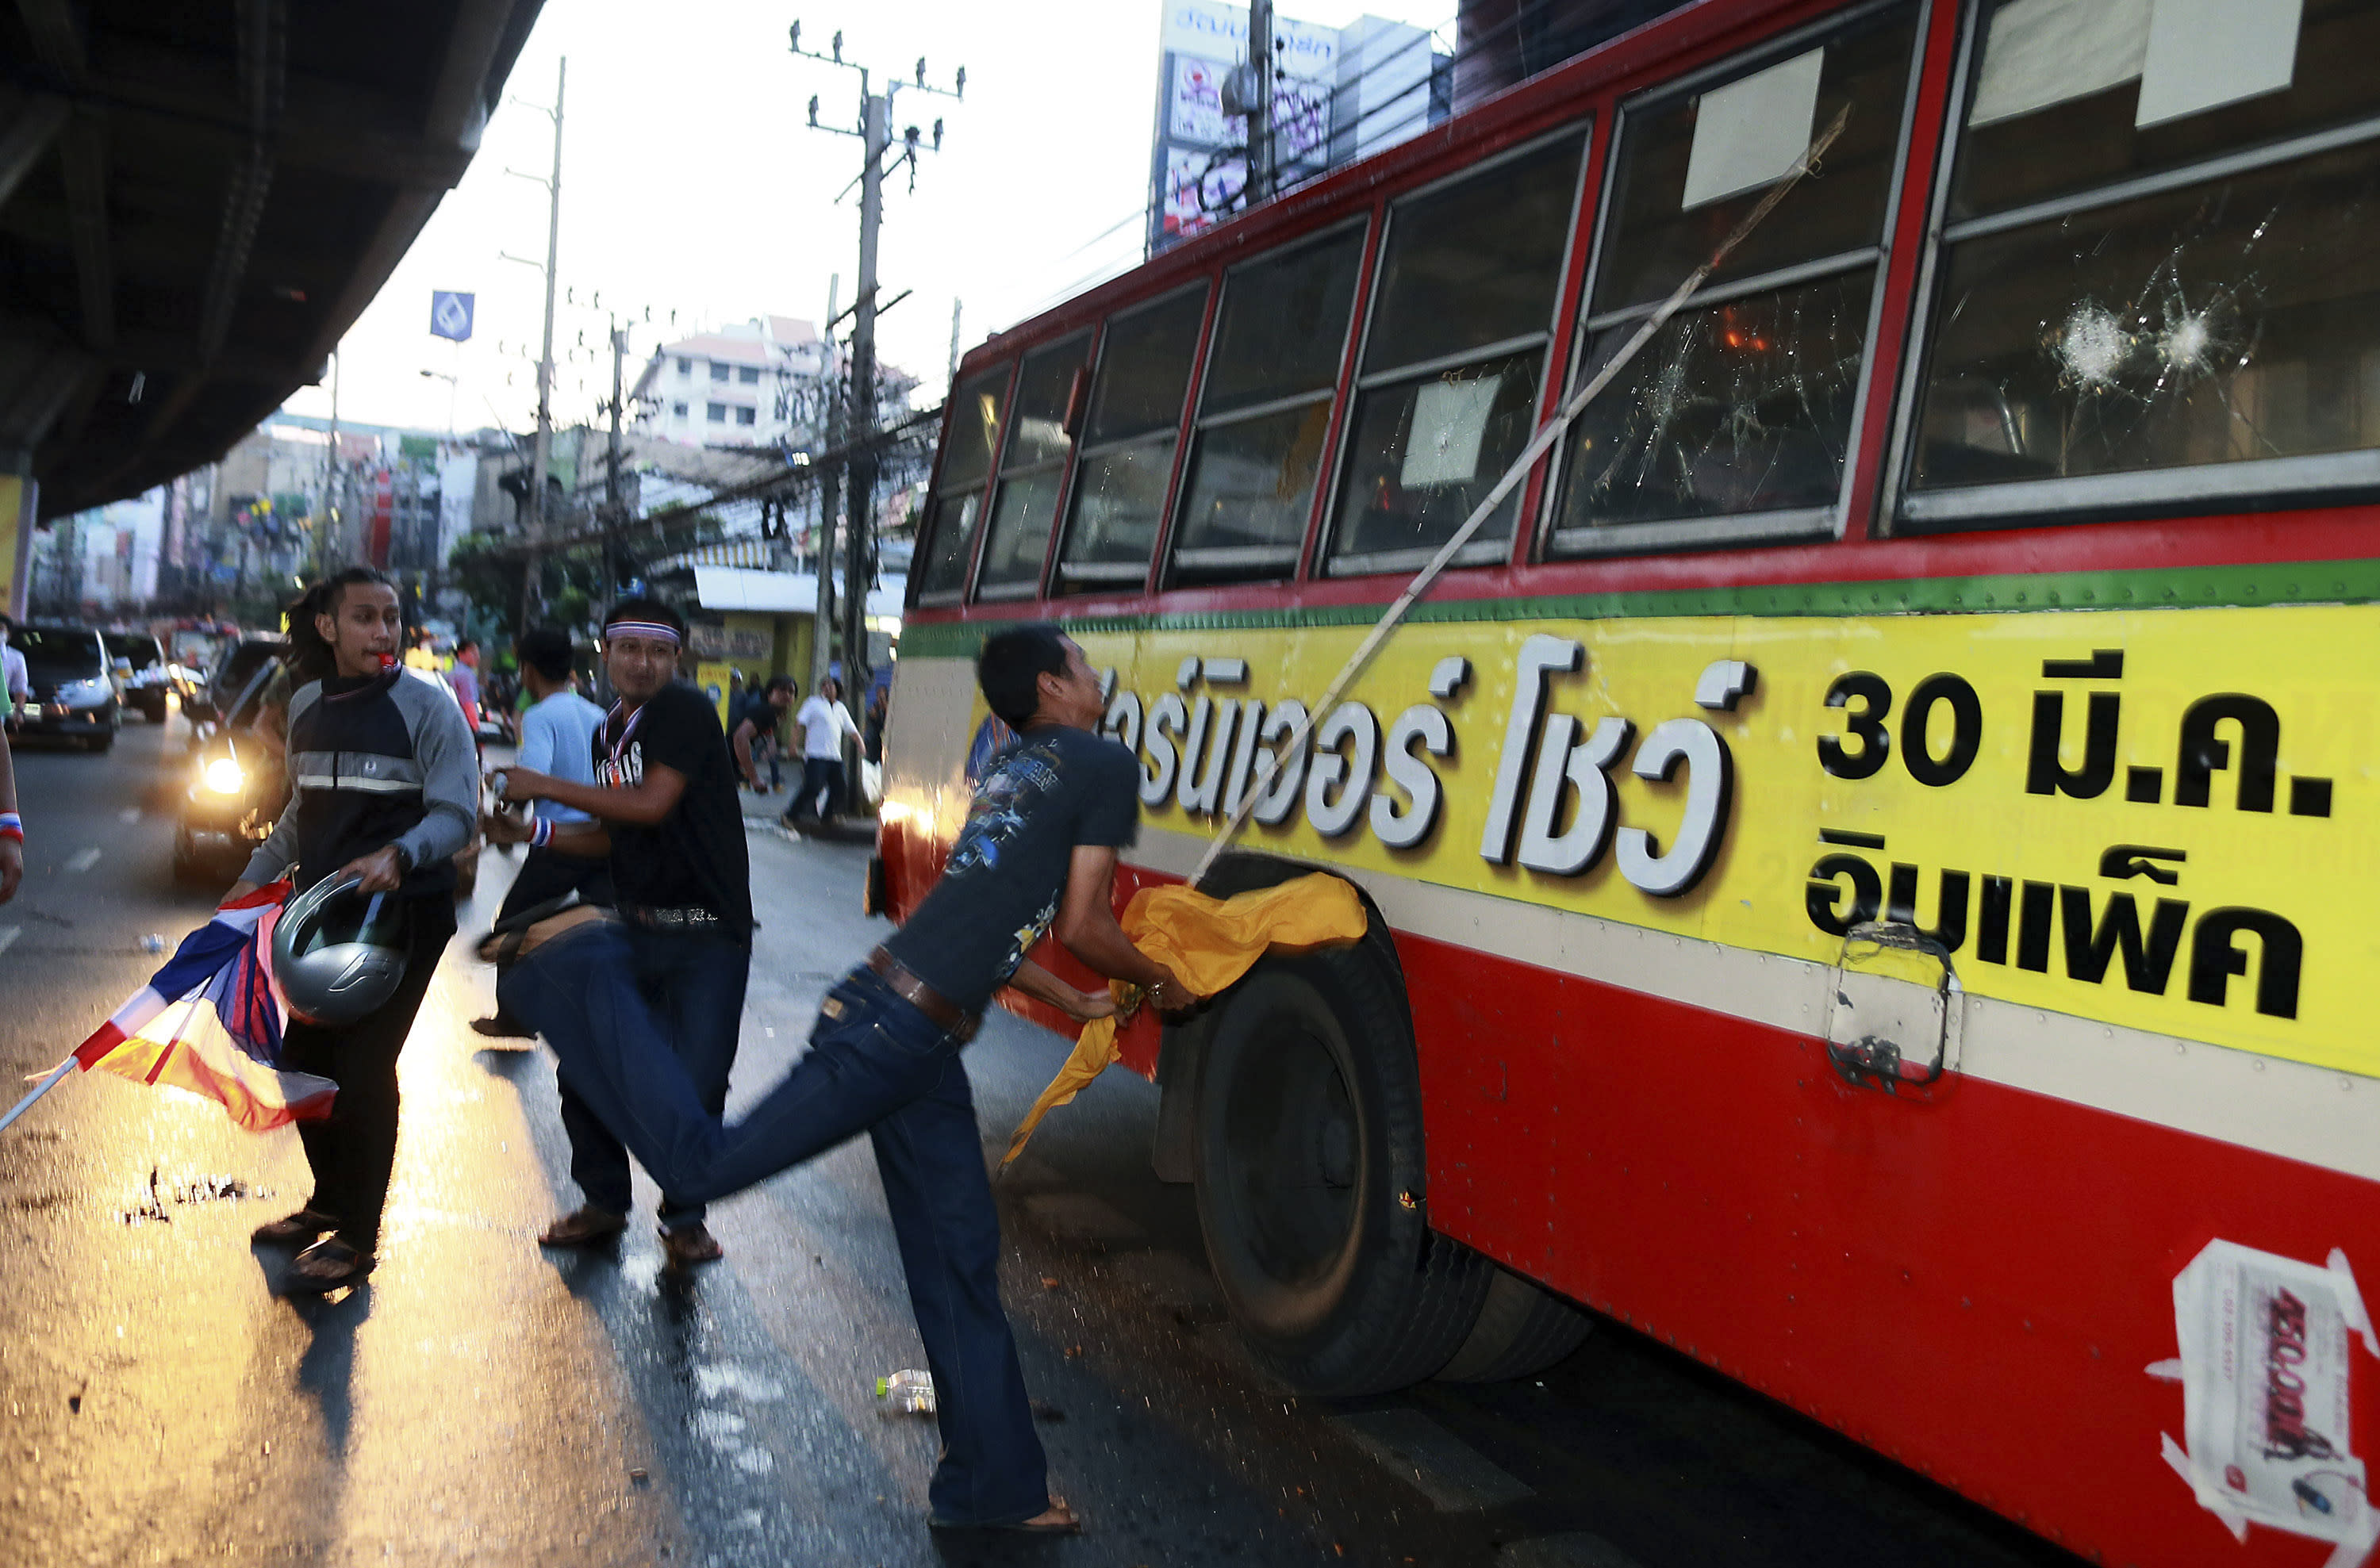 Anti-government protesters attack people they suspected of supporting the current Thai government on the bus in Bangkok,Thailand Saturday, Nov. 30, 2013. A mob of anti-government protesters smashed the windows of a moving Bangkok bus Saturday in the first eruption of violence after a week of tense street protests.(AP Photo/Wason Wanichakorn)